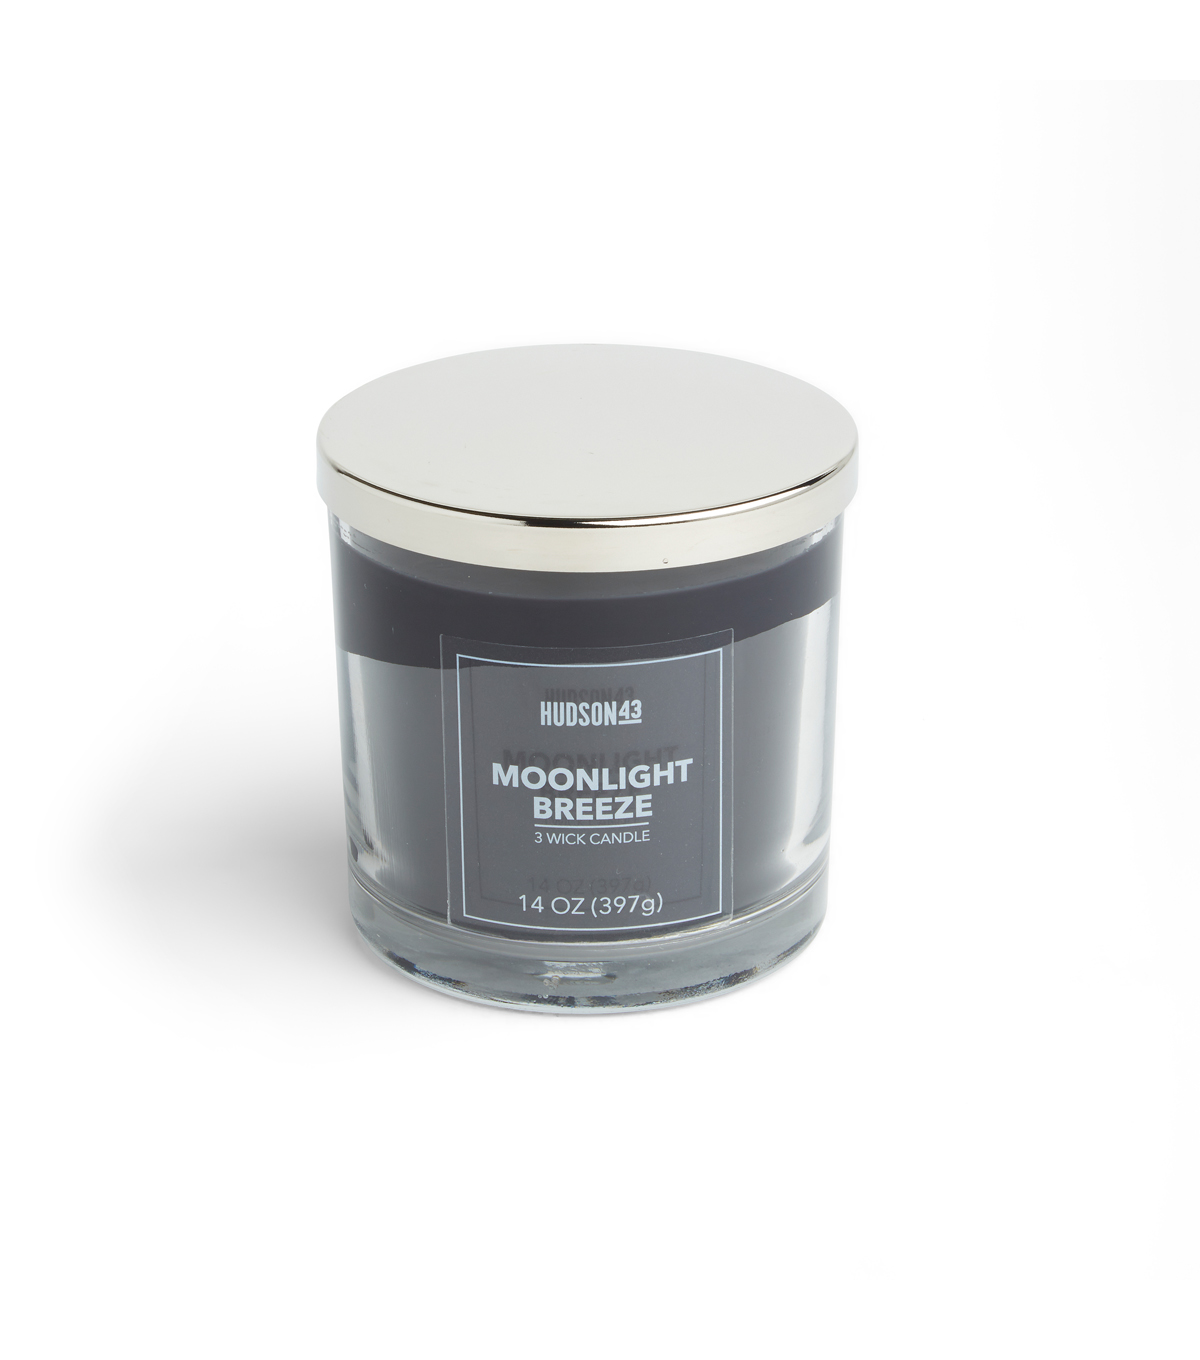 Hudson 43 Candle & Light 14 oz. Moonlight Breeze Scented Jar Candle